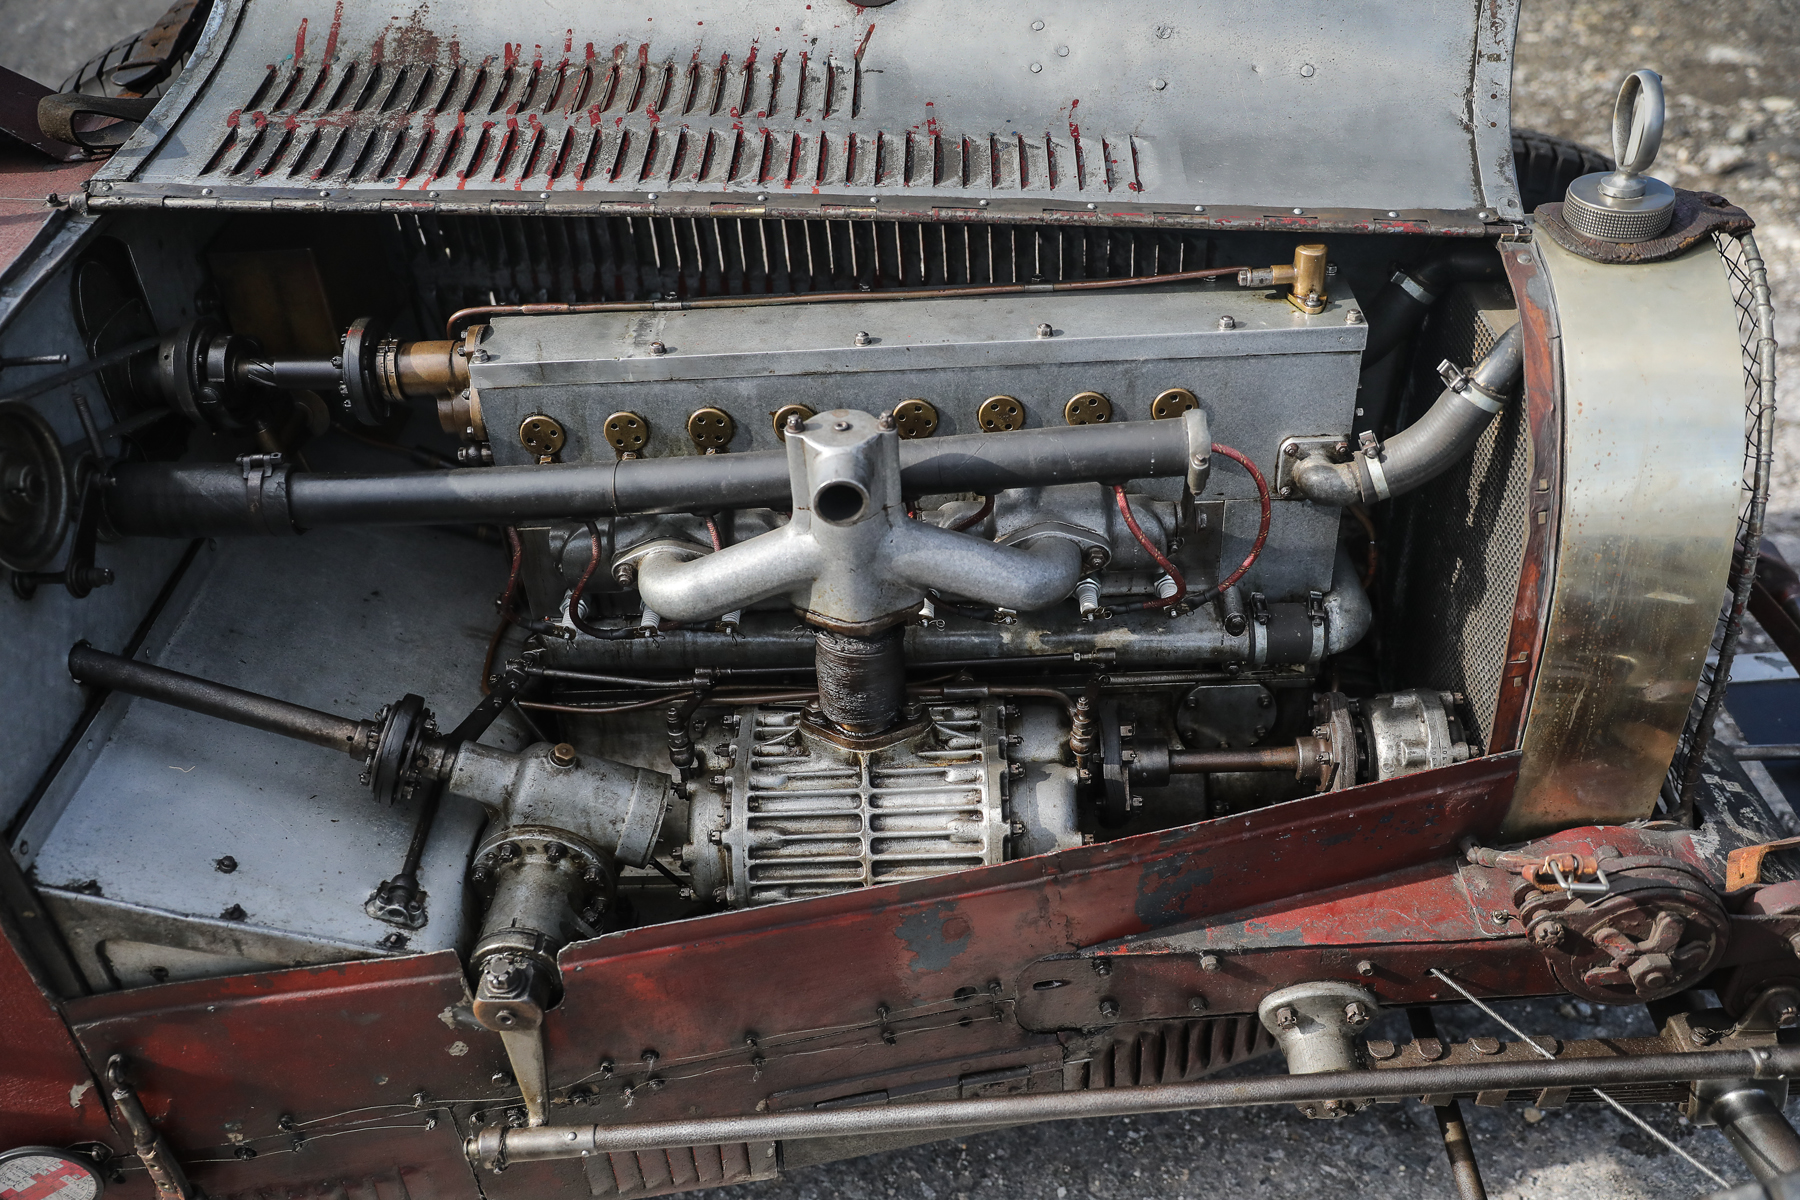 1928 Bugatti Type 35C Grand Prix engine bay